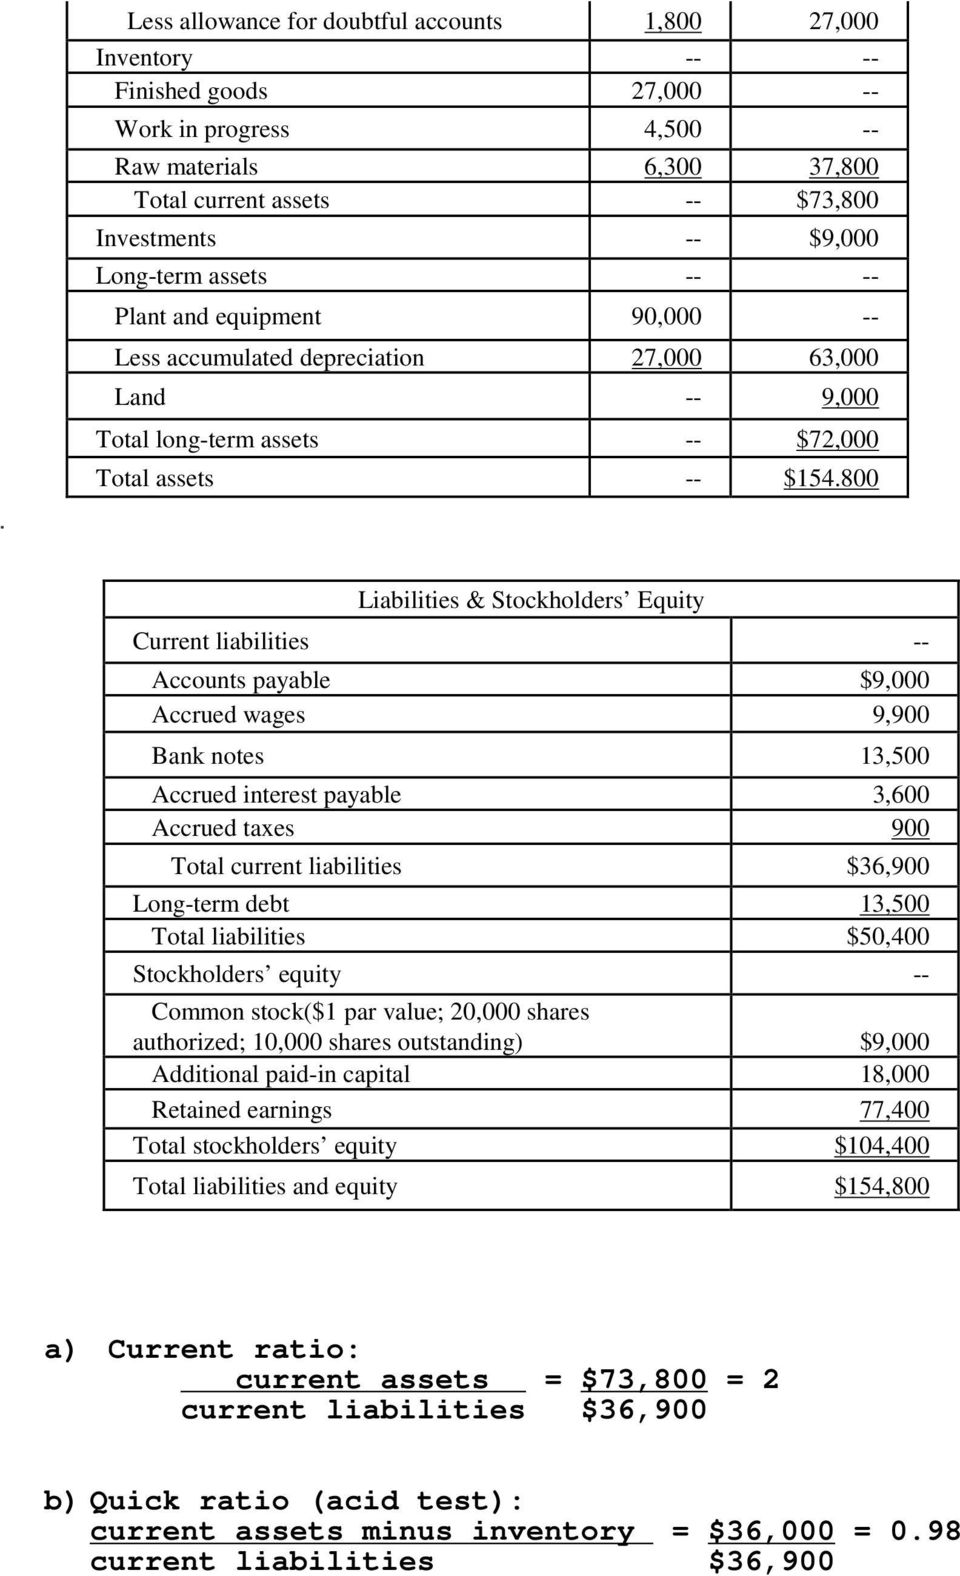 800 Liabilities & Stockholders Equity Current liabilities -- Accounts payable $9,000 Accrued wages 9,900 Bank notes 13,500 Accrued interest payable 3,600 Accrued taxes 900 Total current liabilities